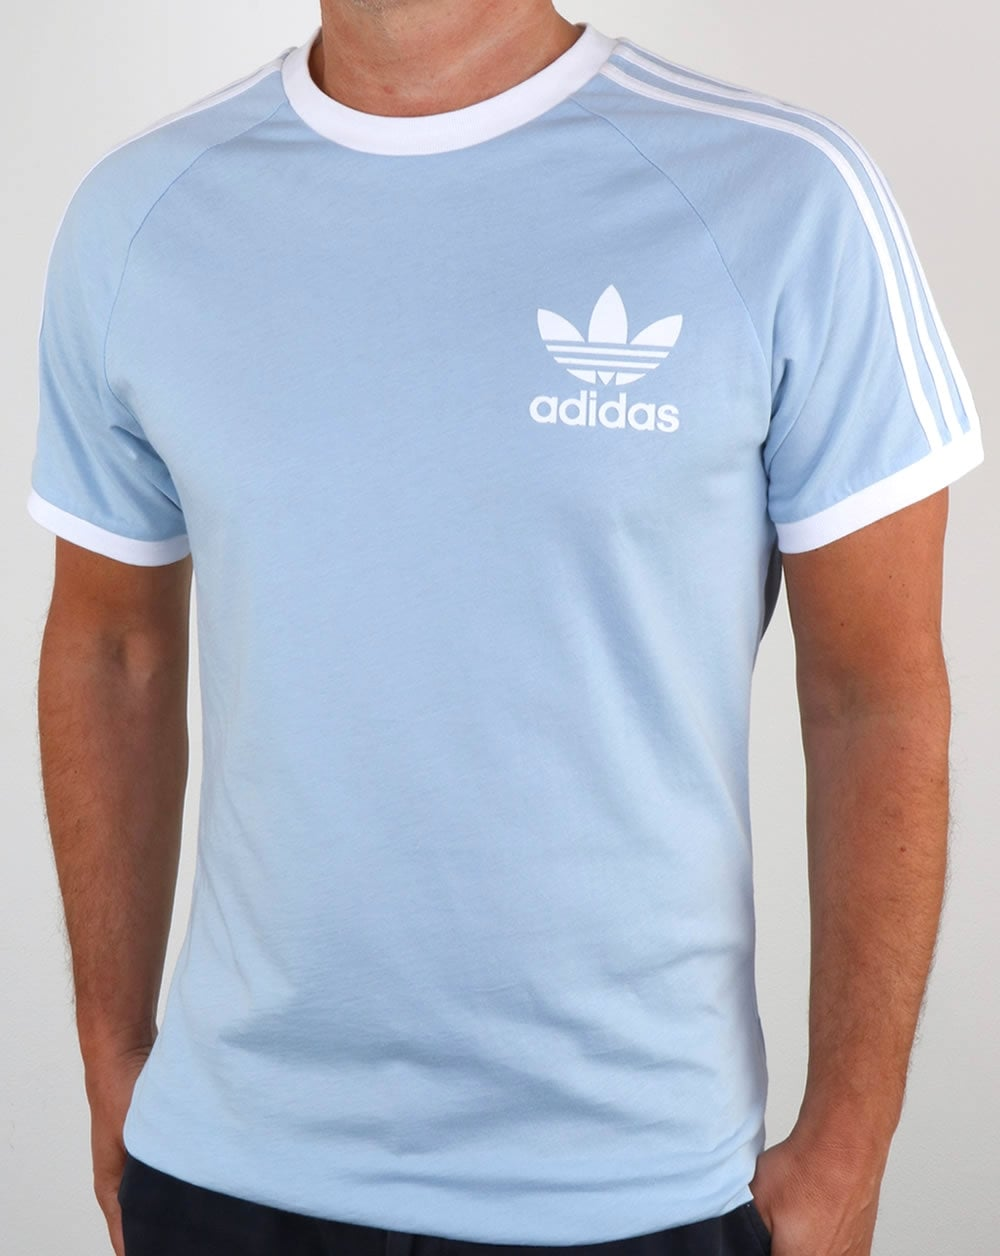 adidas Originals Adidas Originals Retro 3 Stripes T Shirt Sky Blue